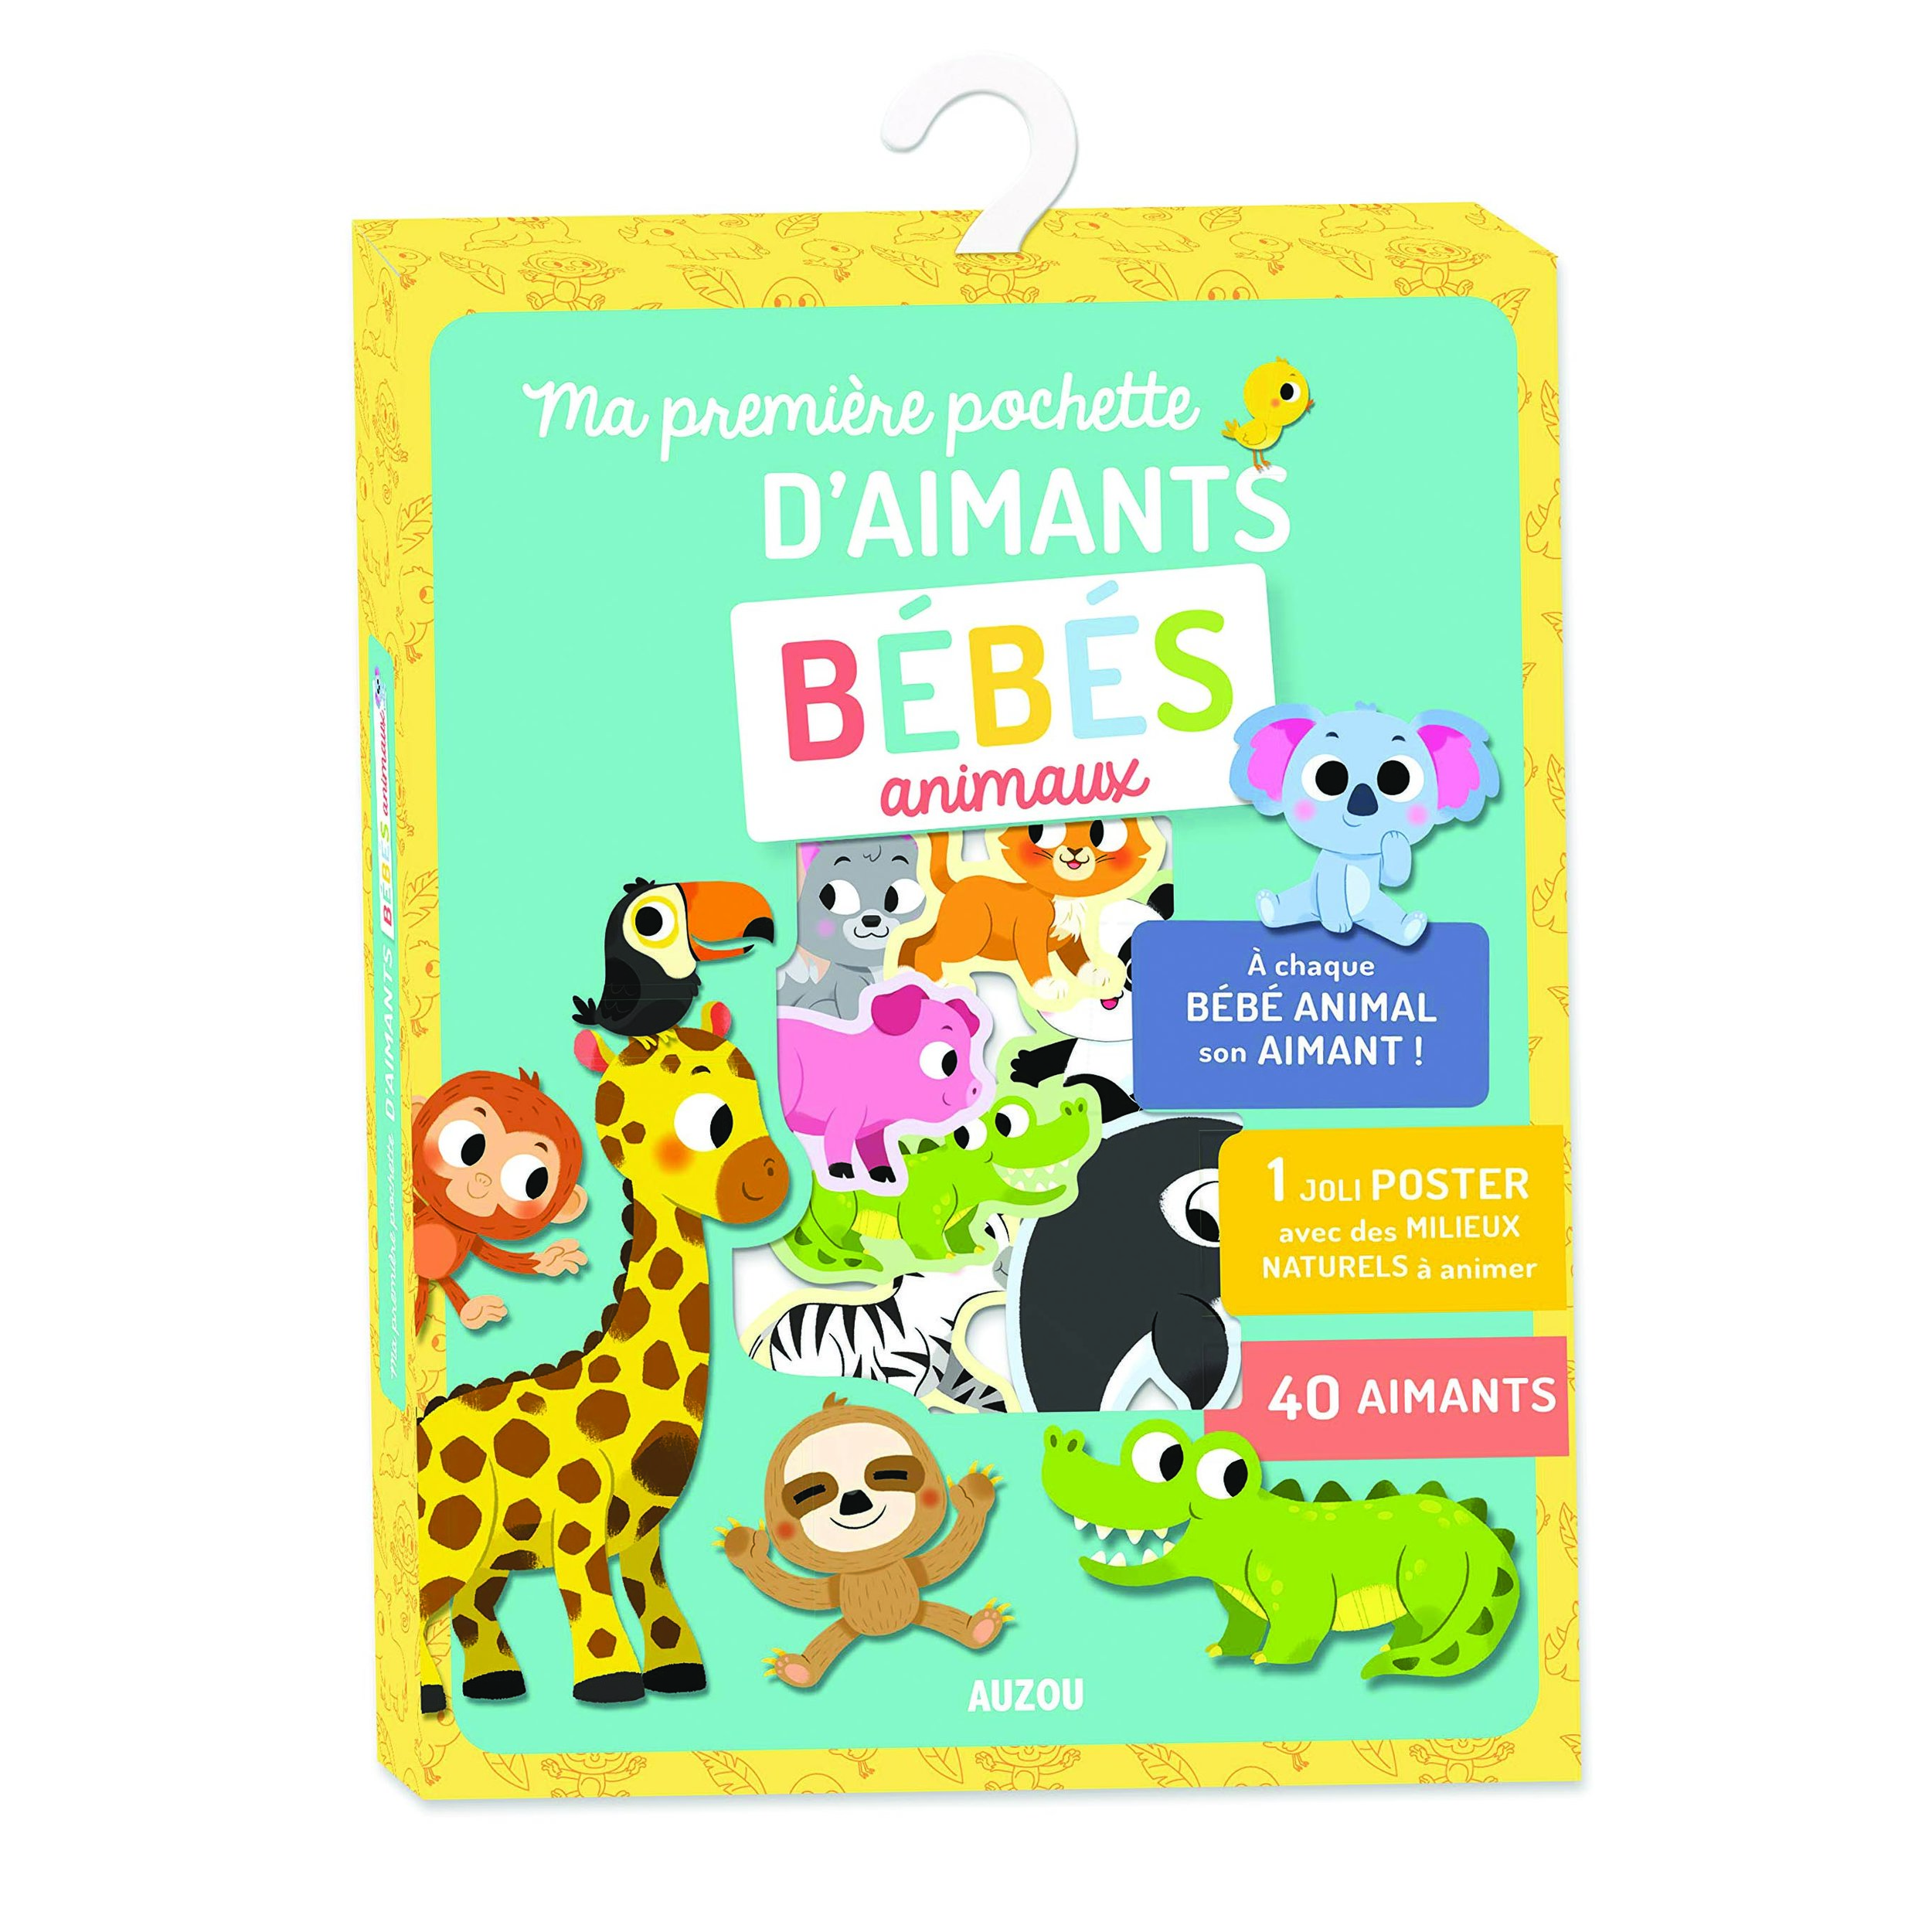 CUTE_BABY_ANIMALS_PAMELA_BARBIERI_EDITIONS_AUZOU